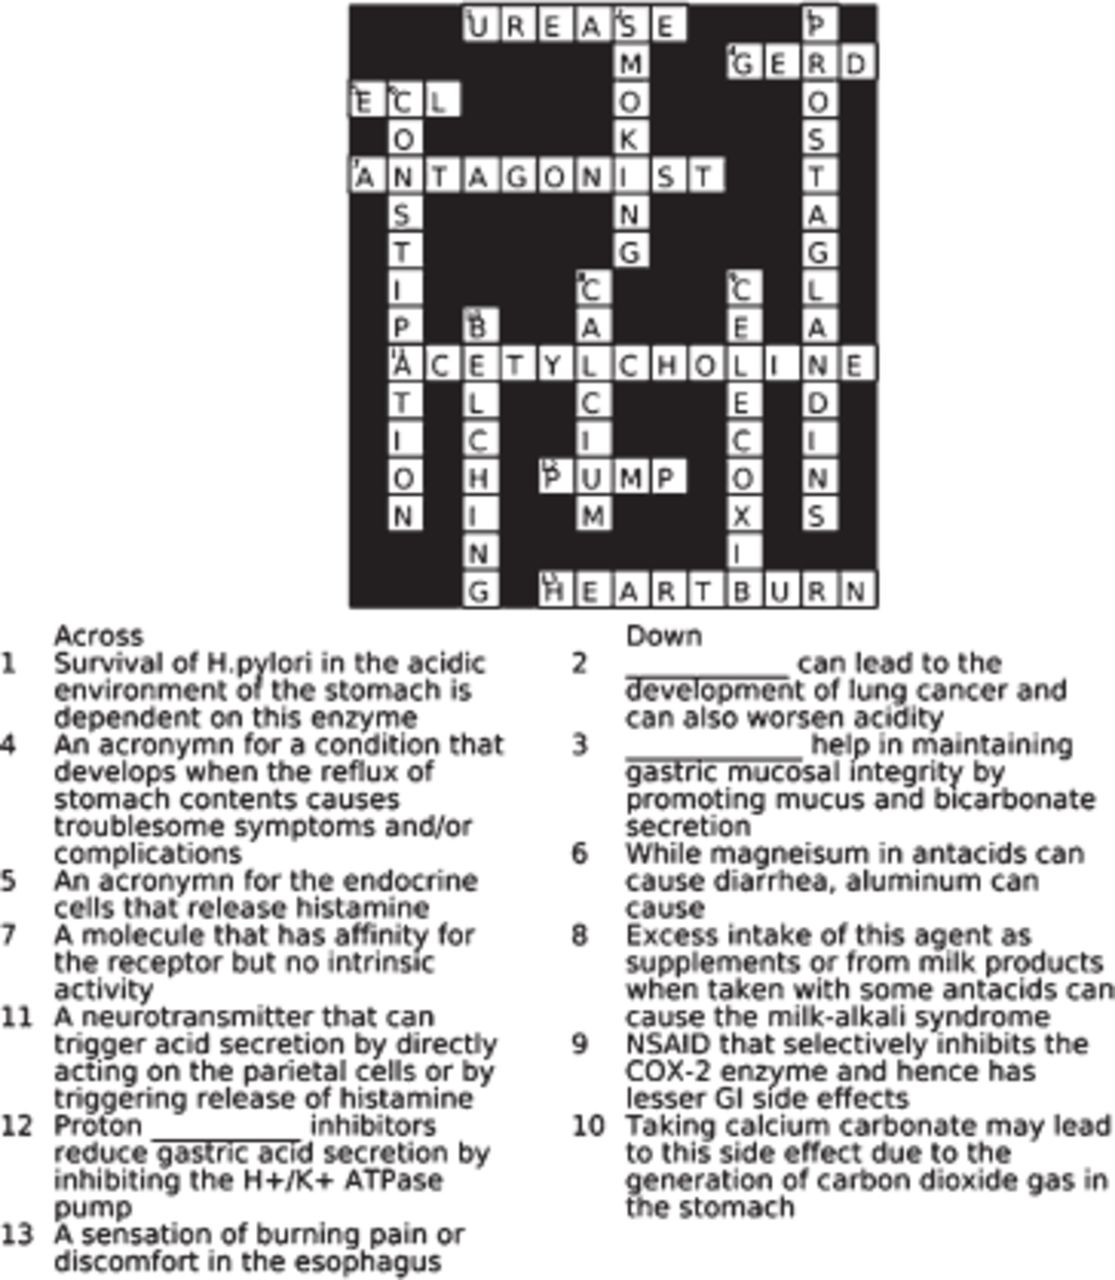 Crossword Puzzles As A Tool To Enhance Learning About Anti Ulcer Agents American Journal Of Pharmaceutical Education